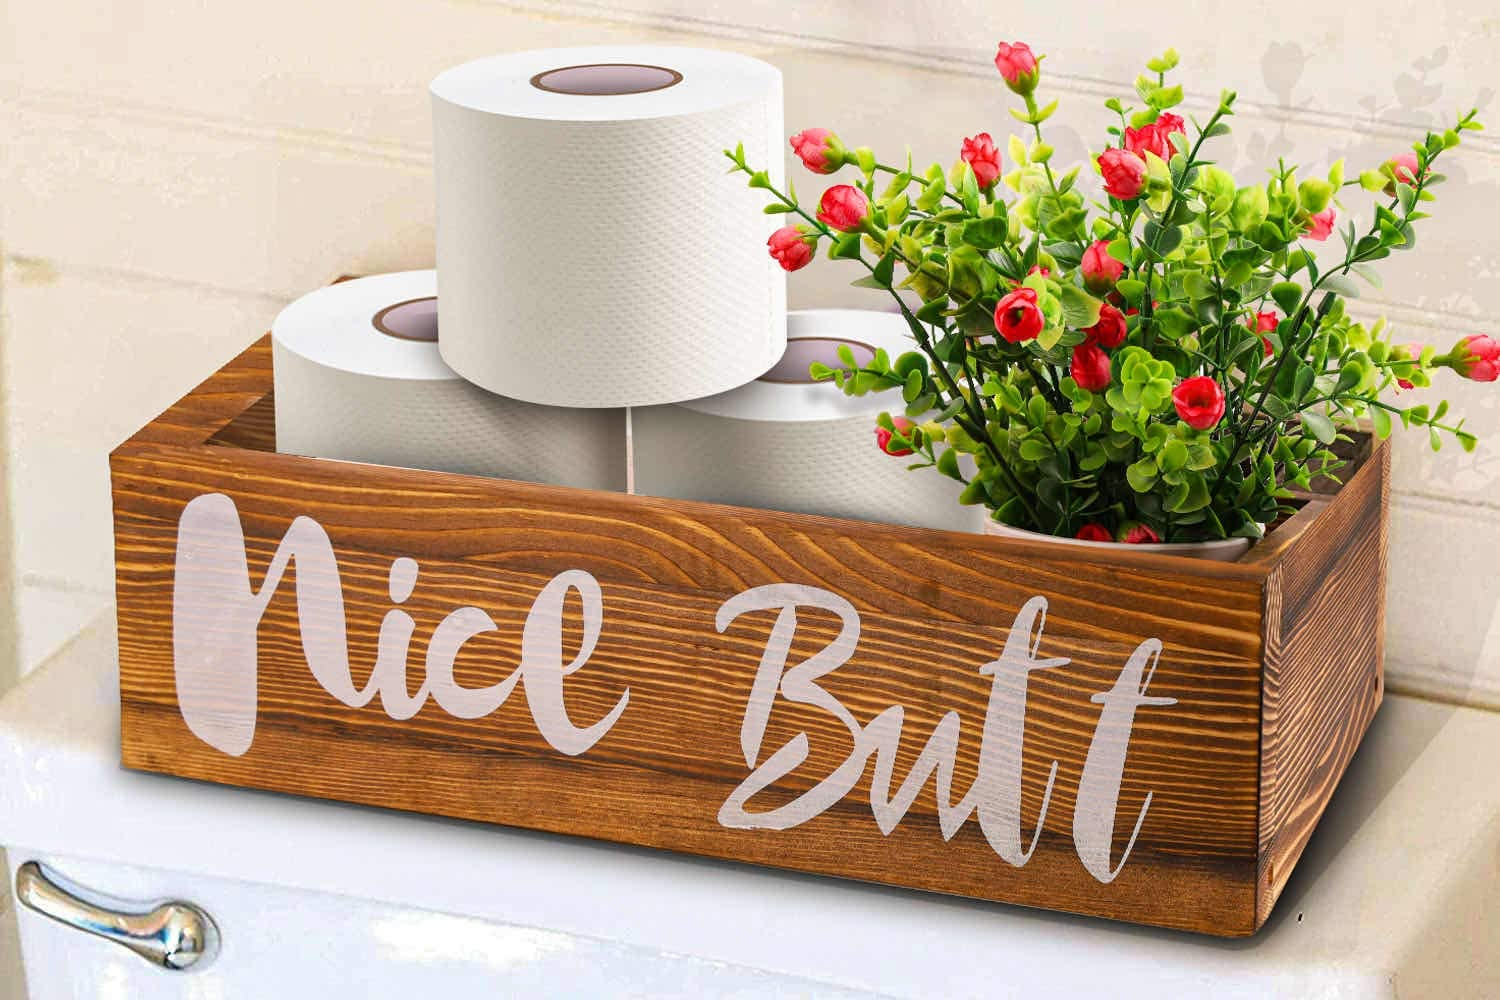 Supsiah Nice Butt Bathroom Decor Box Toilet Paper Holder Storage Funny Gift Farmhouse Wooden Rustic Decor For Home Kitchen and Bedrooms Brown